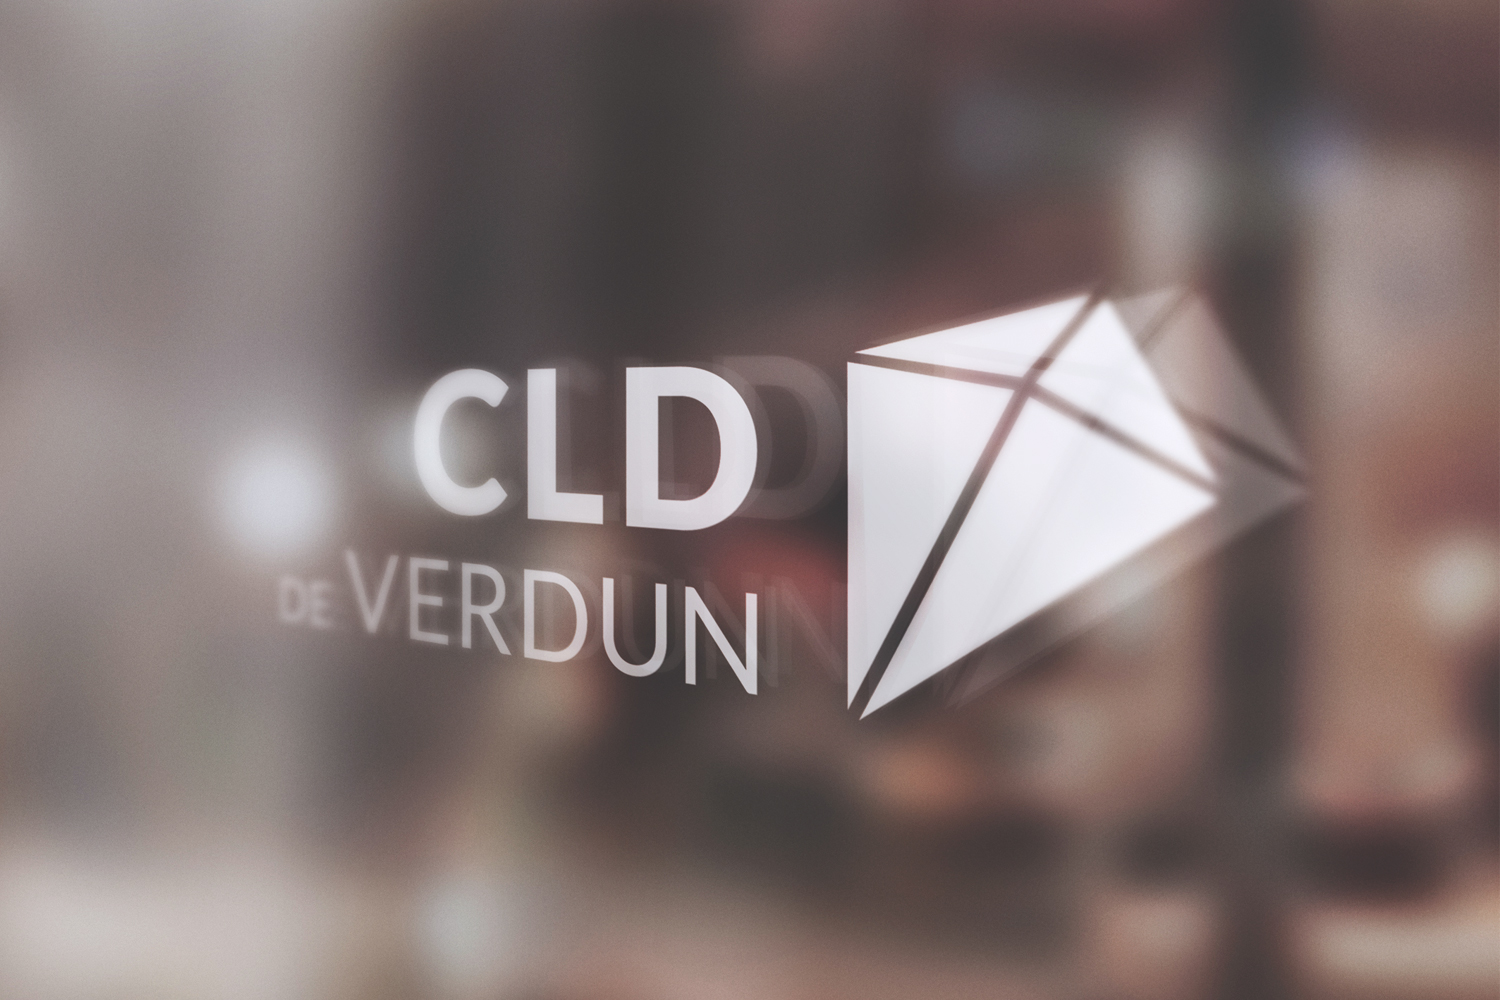 cld de verdun logo in white on glass window, signage, branding, kite, logo, centre local de developpement de verdun, french, verdun, entrepreneurs, startups, local businesses